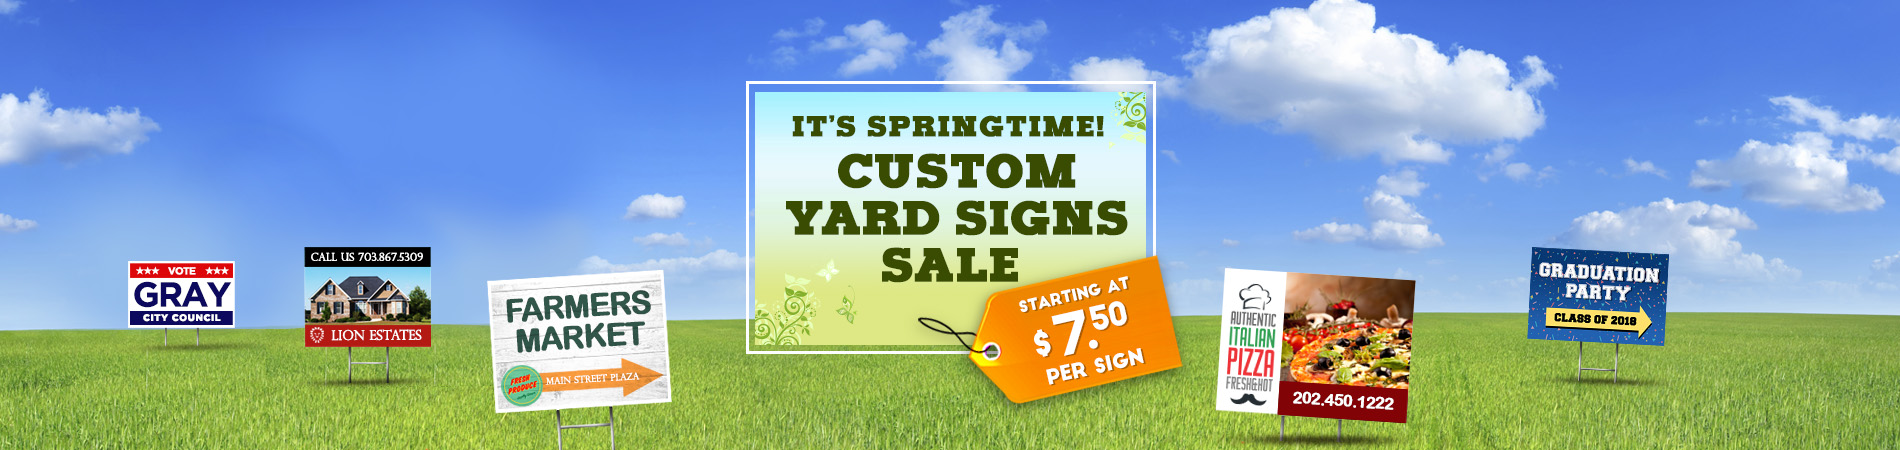 Yard Sign Sale